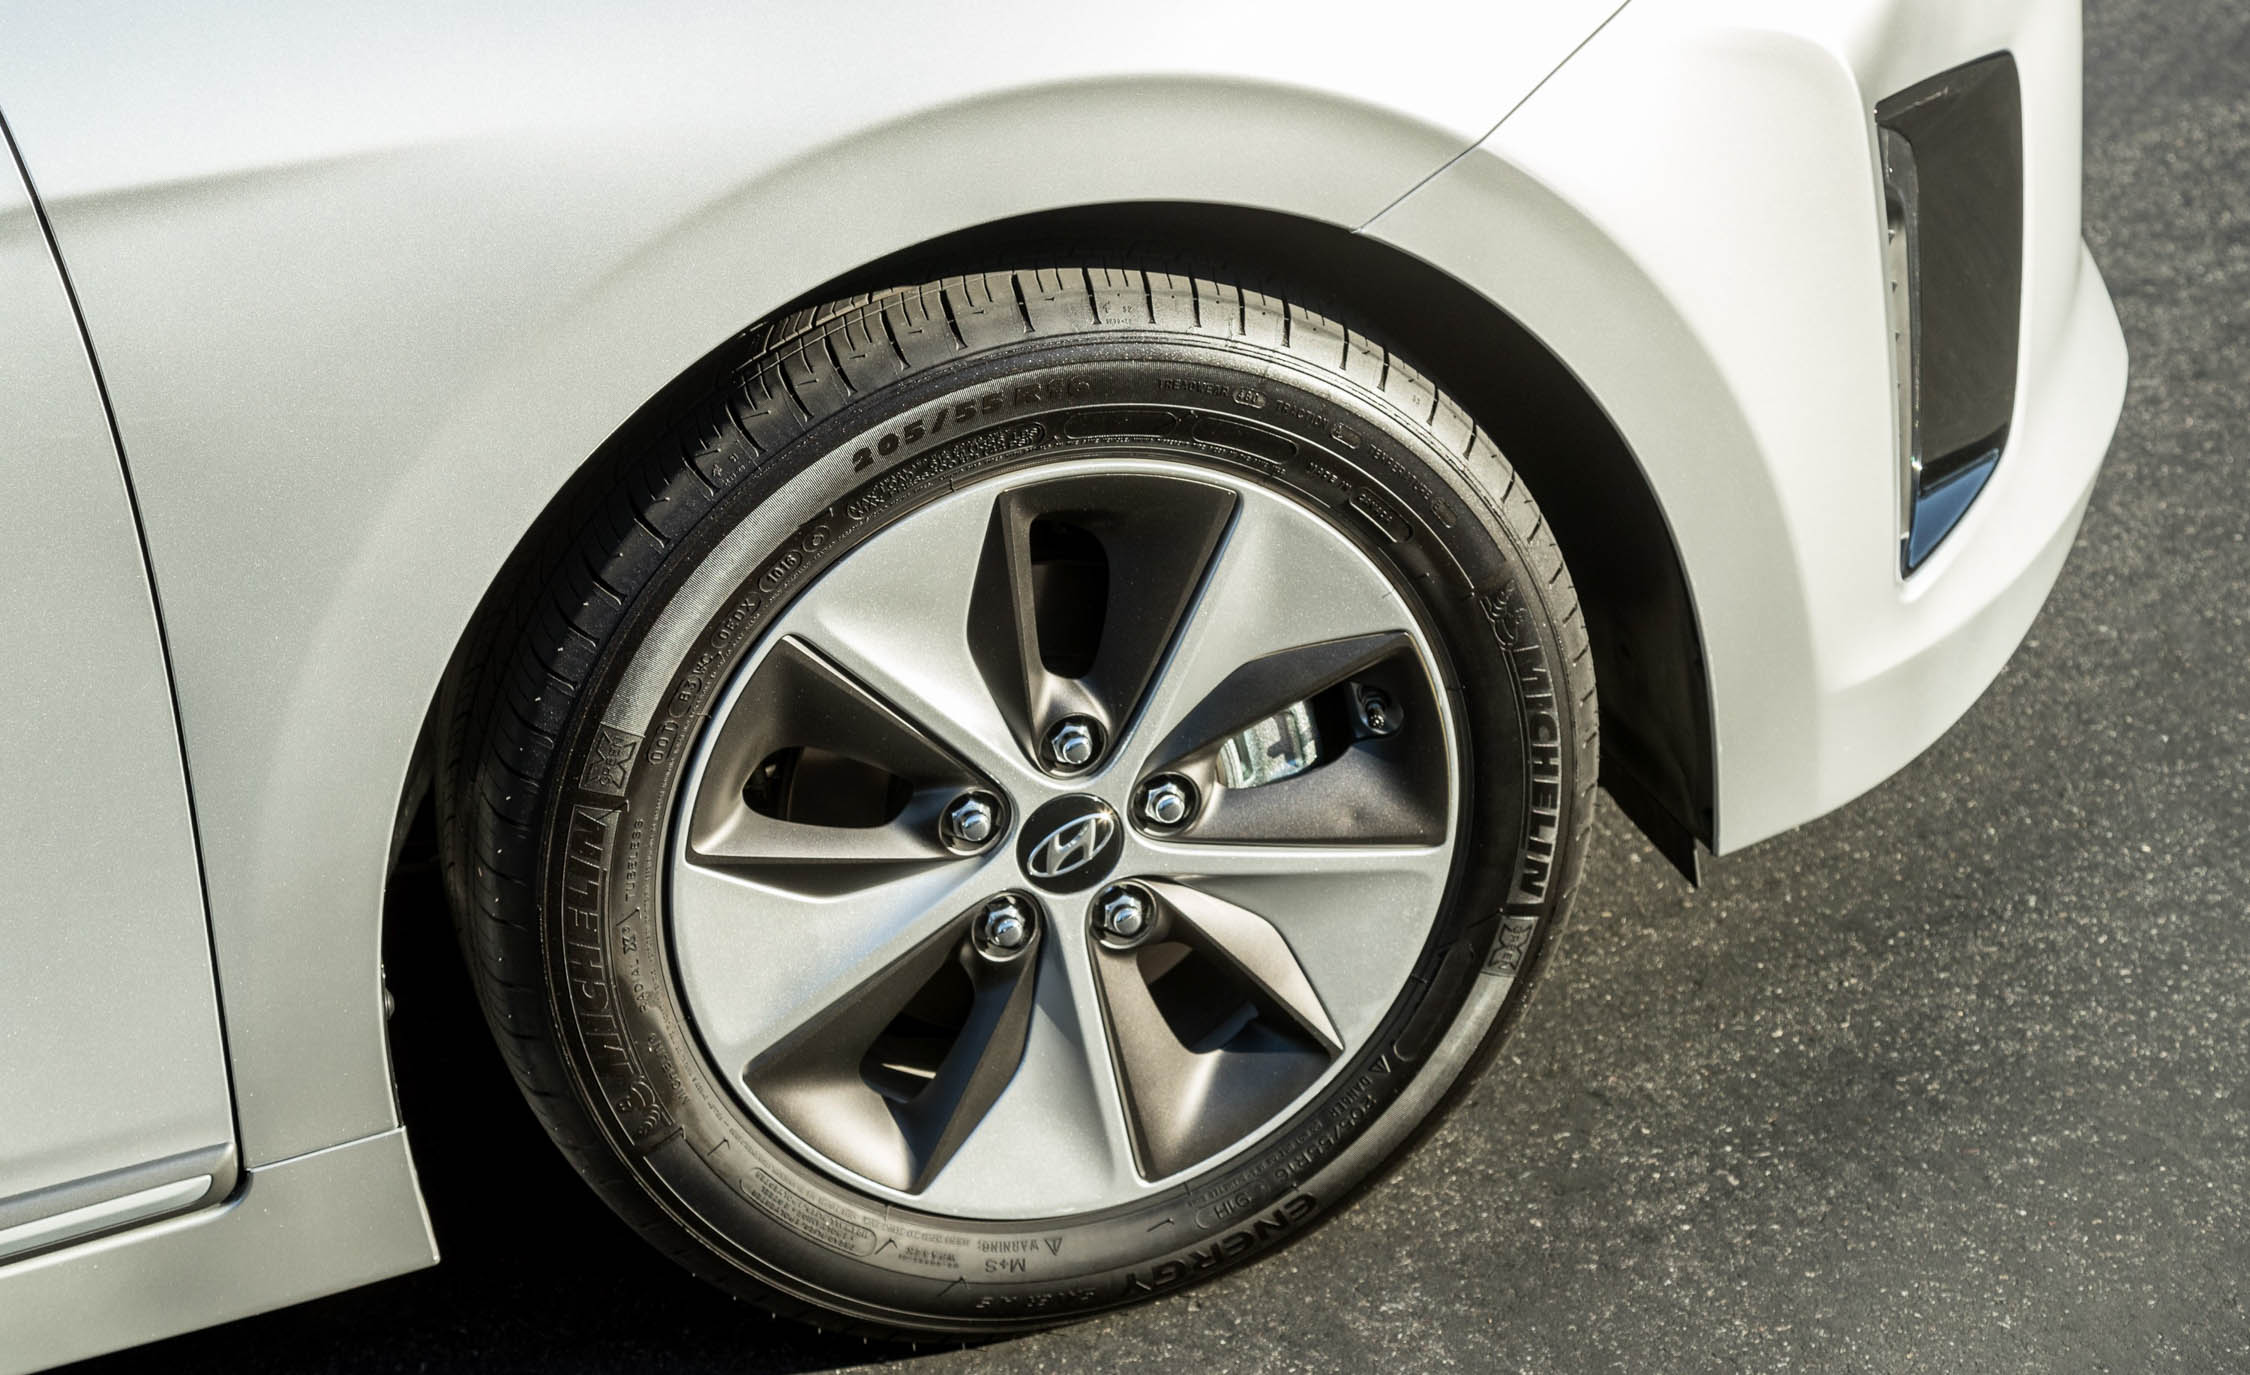 2017 Hyundai Ioniq Electric Exterior View Wheel Profile (Photo 17 of 67)